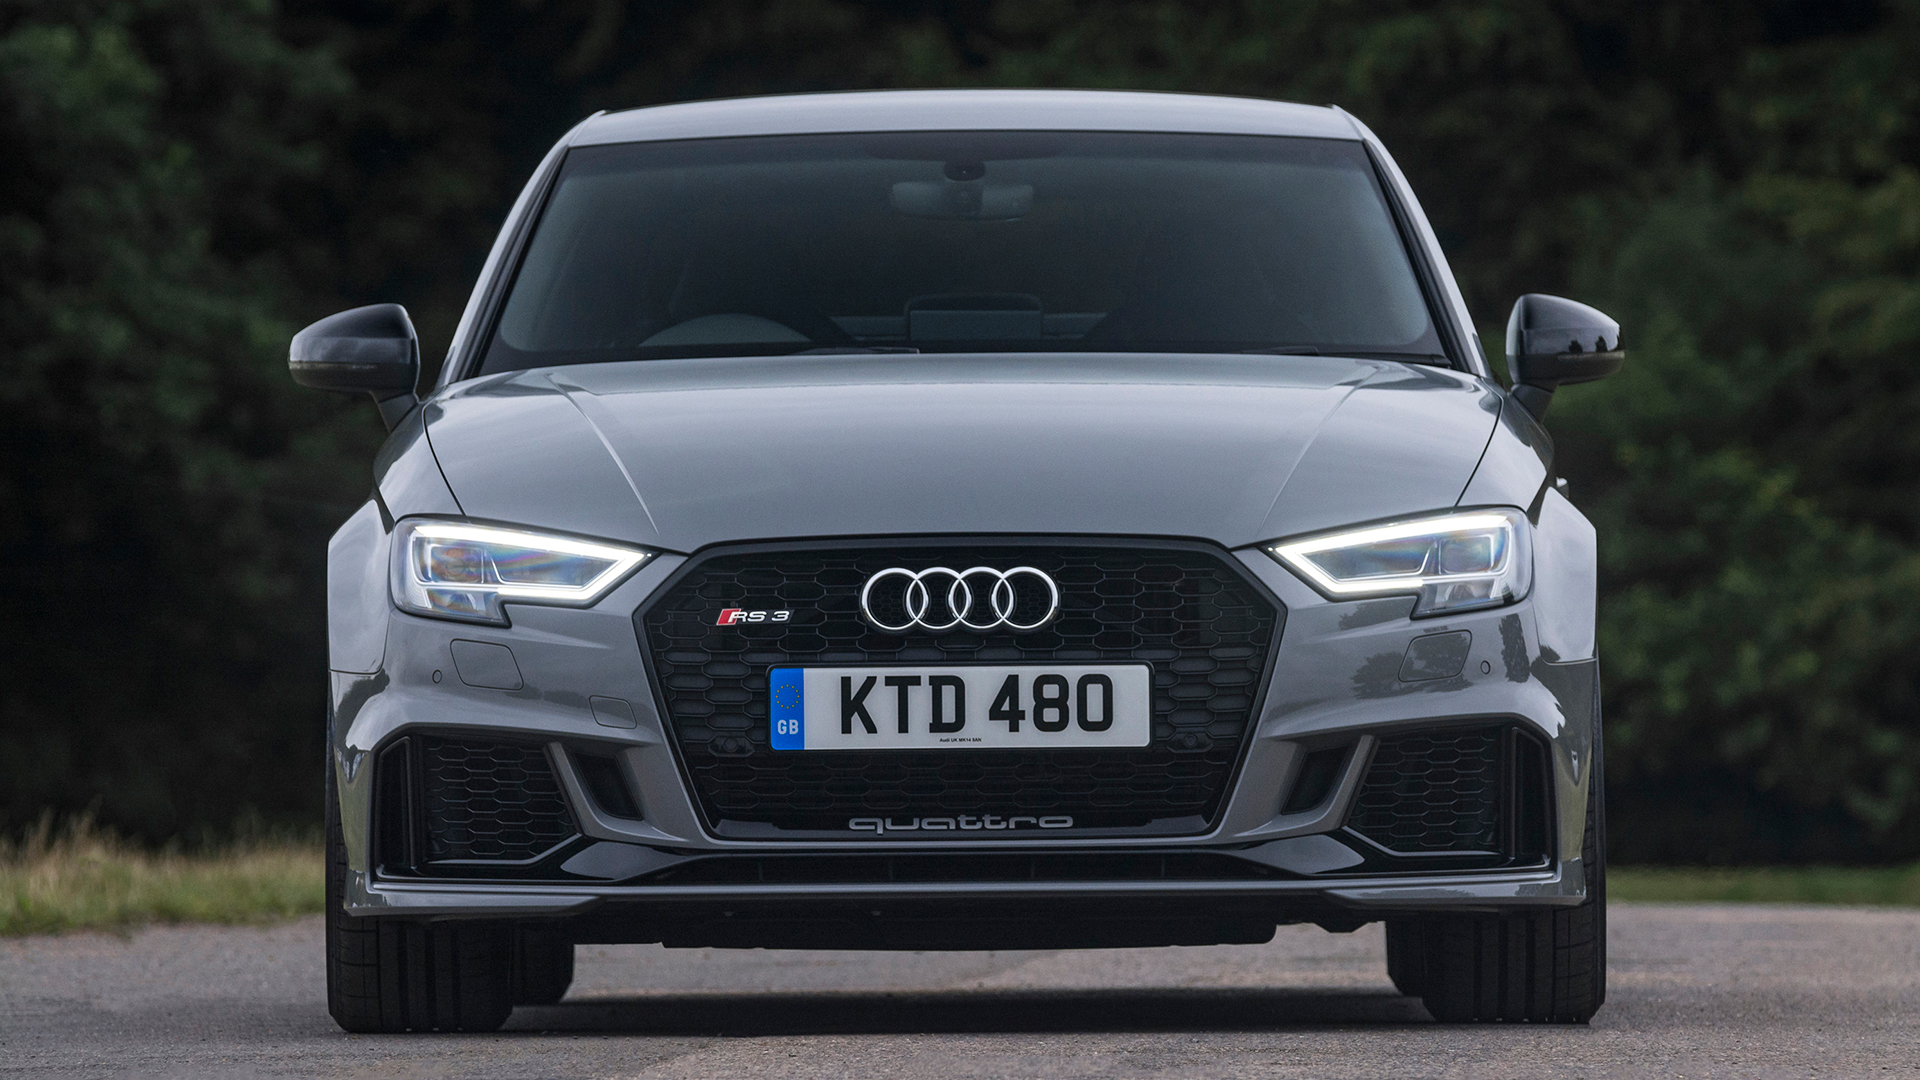 Grey Audi Rs3 Used Cars For Sale On Auto Trader Uk